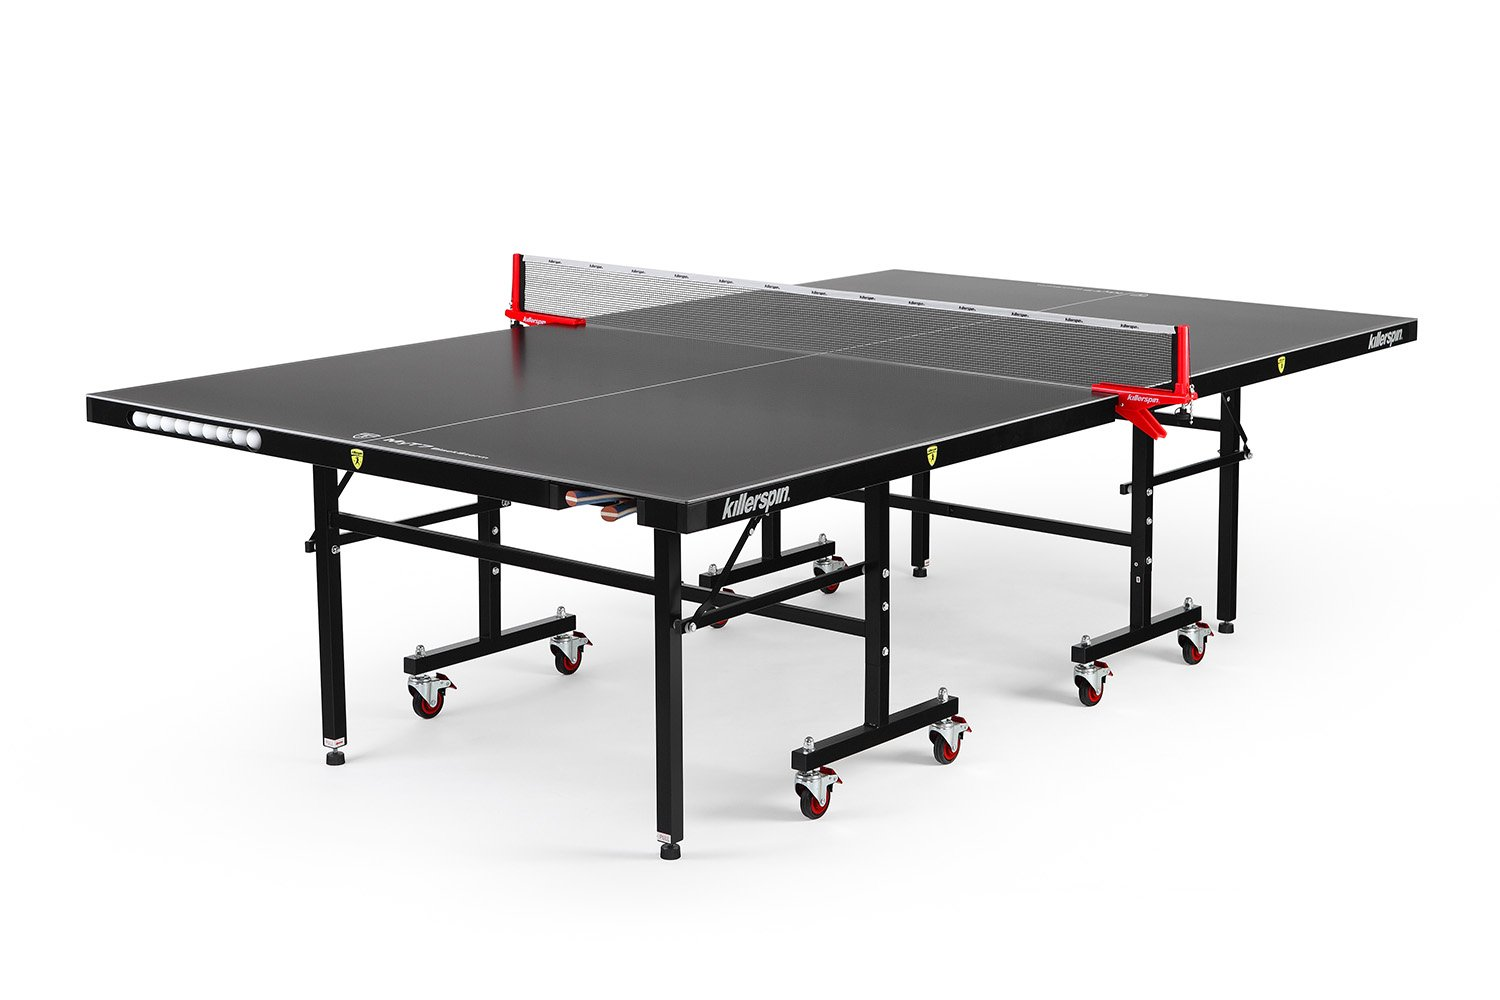 Killerspin myt7 Blackstorm Table Tennis Table B01L2FW21Q  テーブル